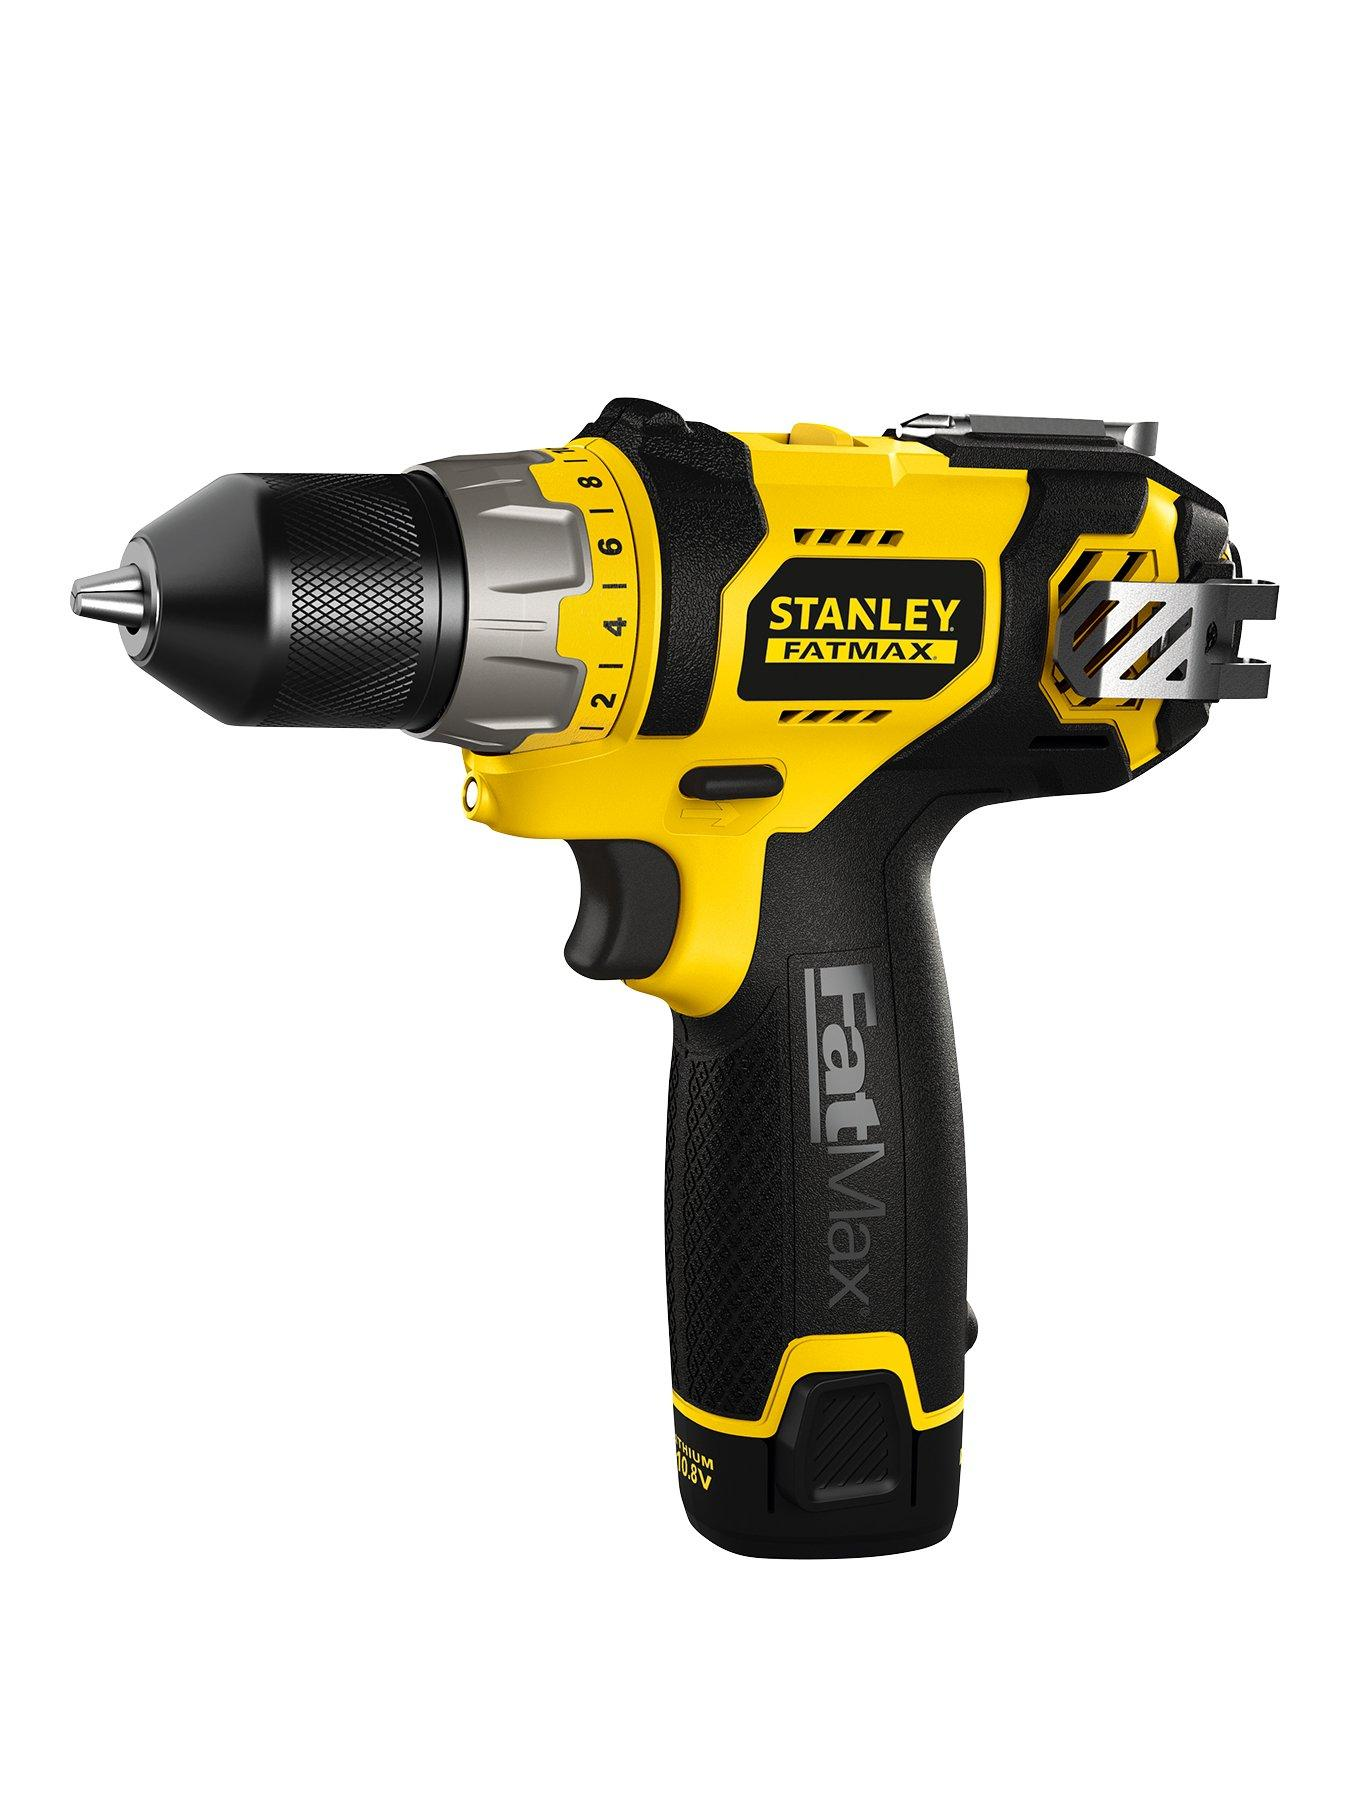 Stanley FatMax 10.8v Lithium Ion Drill Driver